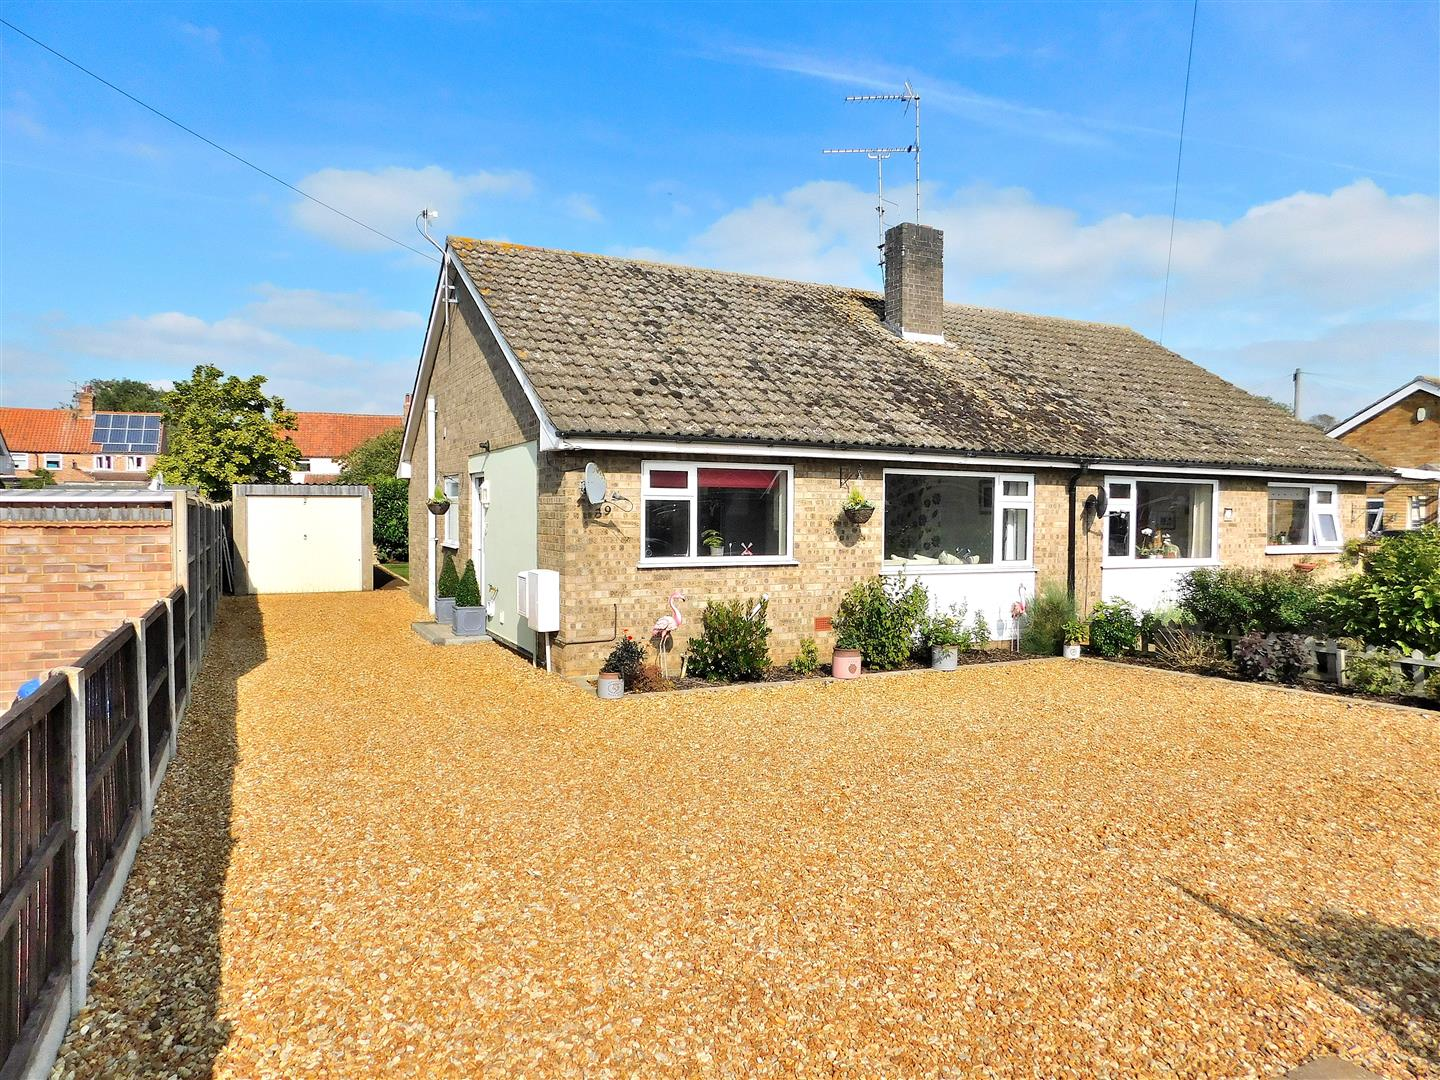 2 bed semi-detached bungalow for sale in King's Lynn, PE31 6JQ 0